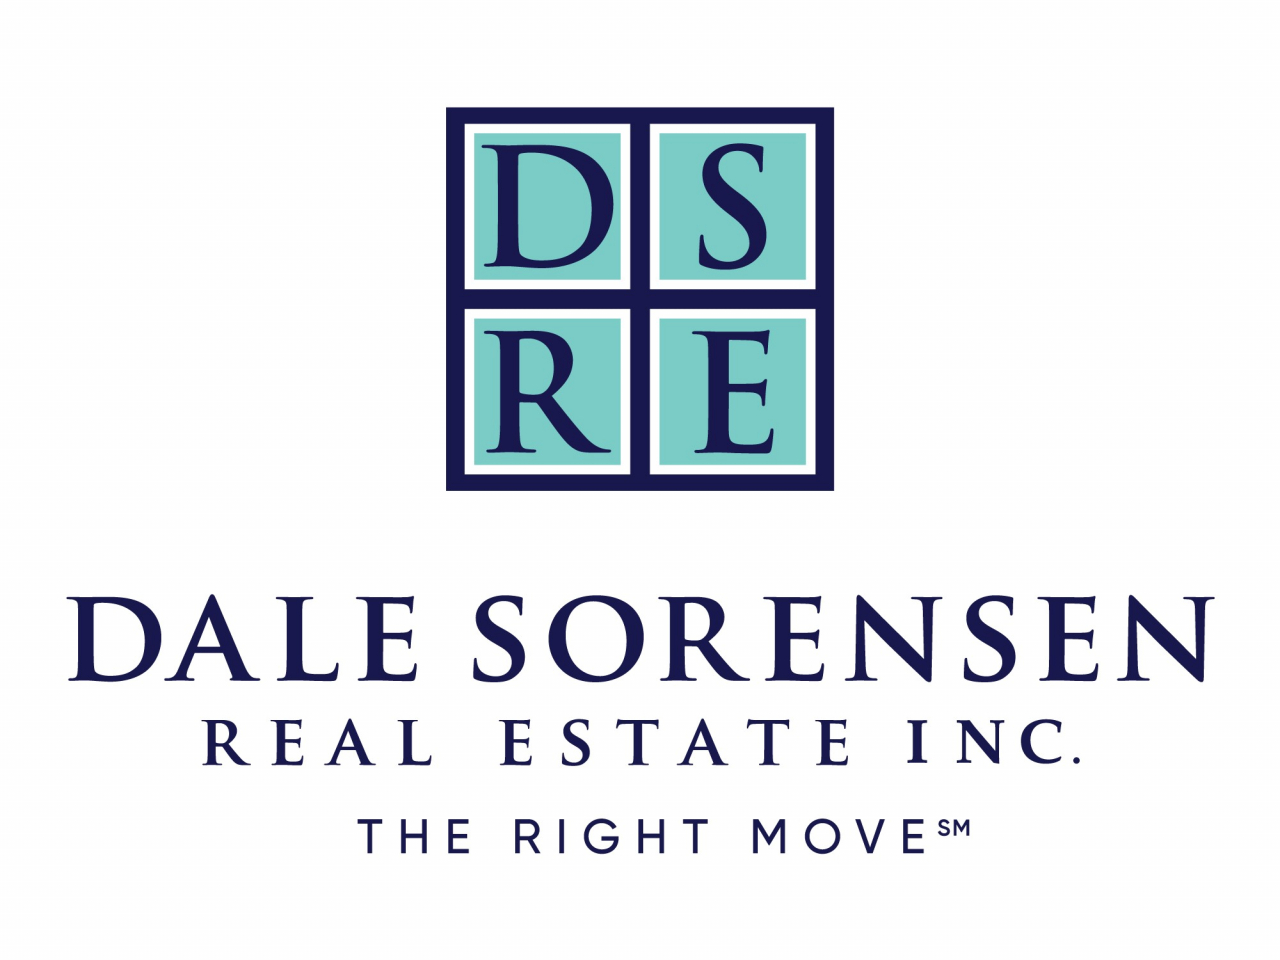 Dale Sorensen Real Estate Inc.